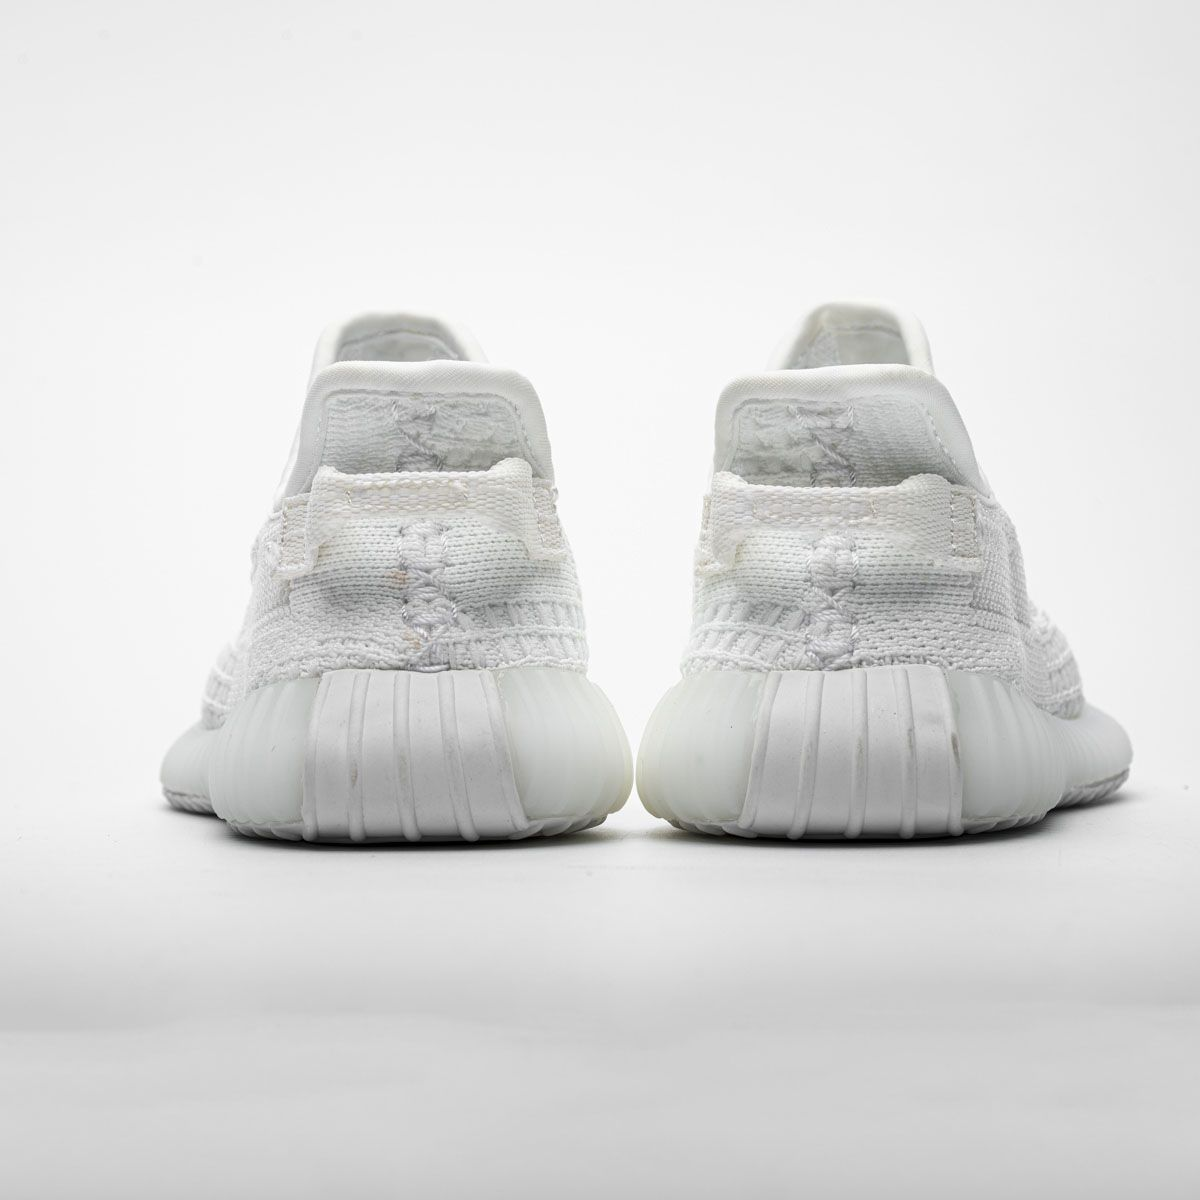 official photos 947d3 0b2ef Kids Adidas Yeezy Boost 350 V2 Infant Cream White BB6372